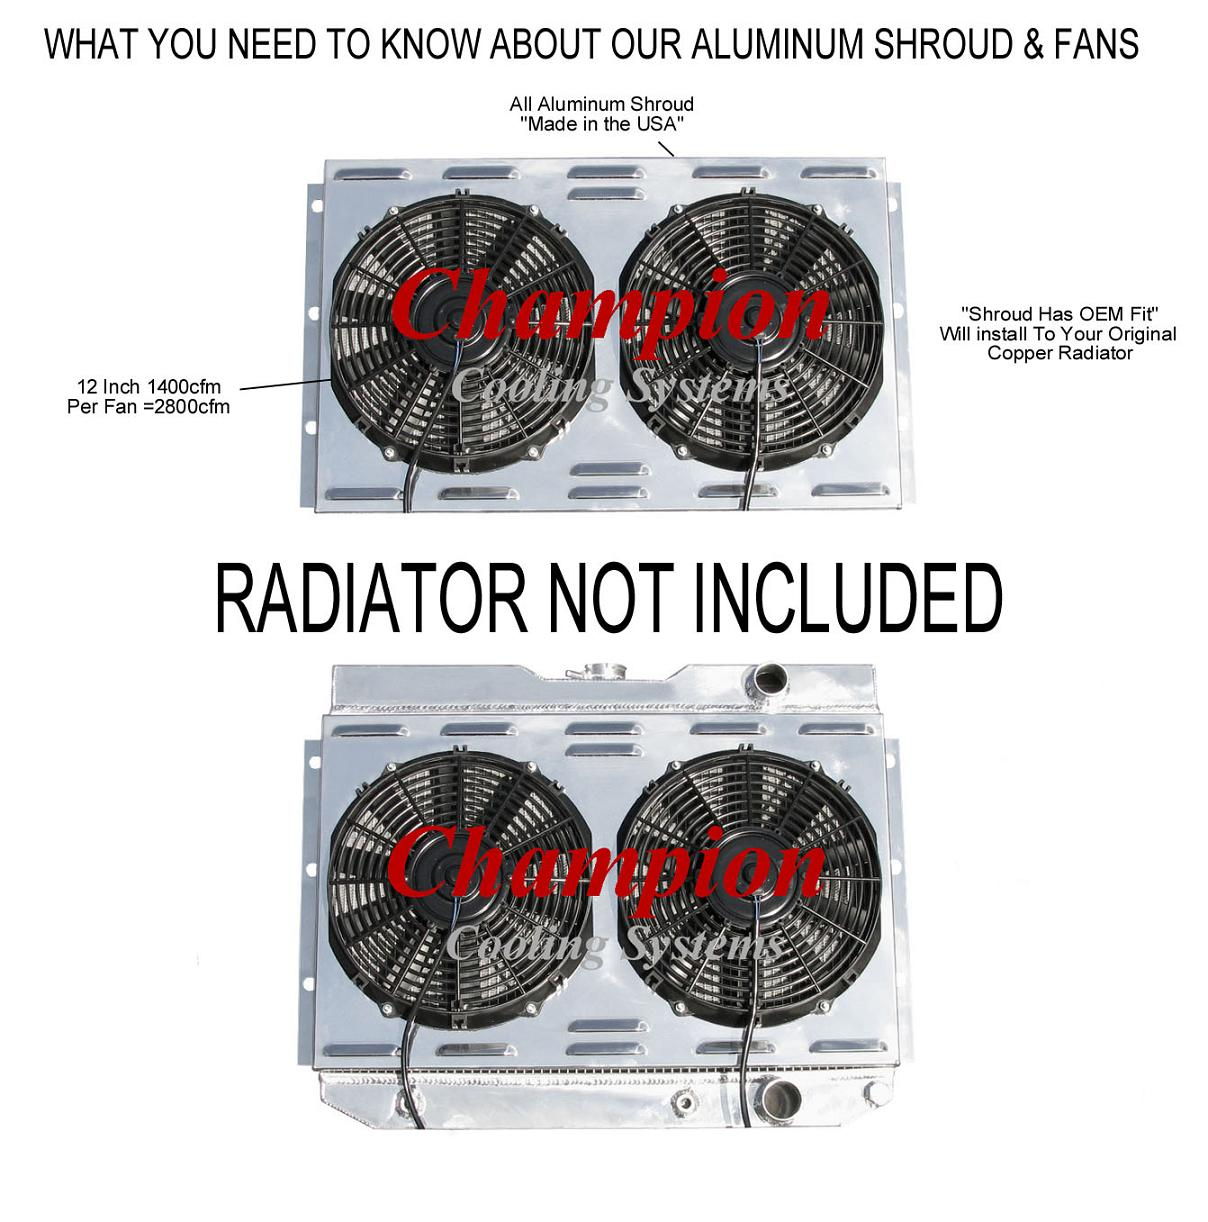 1964 1965 chevy chevelle champion aluminum fan shroud fans you will not a better guarantee anywhere on